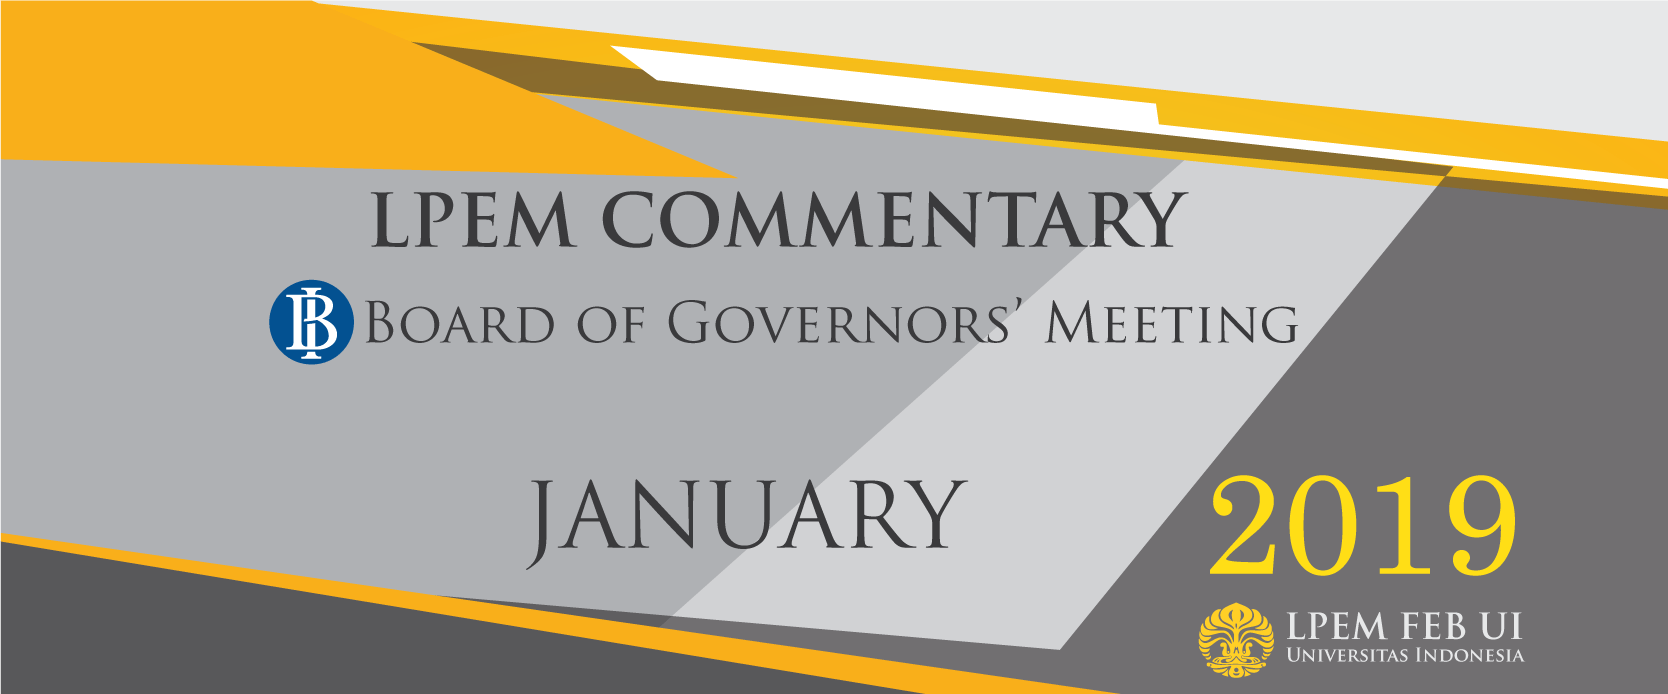 MACROECONOMIC ANALYSIS SERIES: BI Board of Governor Meeting, January 2019